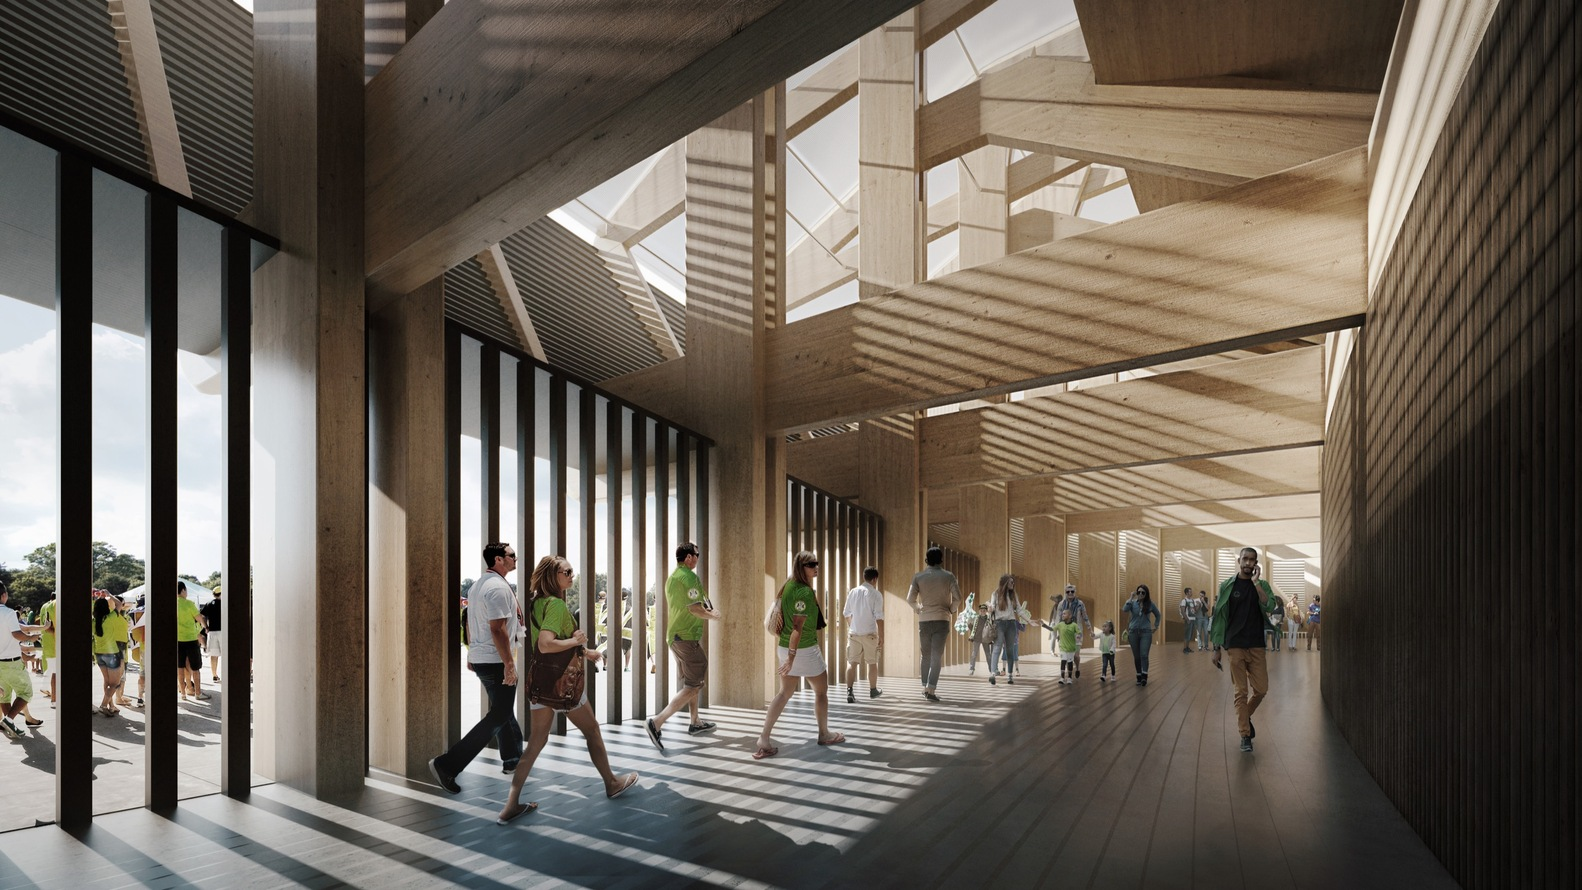 architectural interior renderings. zaha hadid architects\u0027 competition-winning design for forest green rovers will be world\u0027s first architectural interior renderings